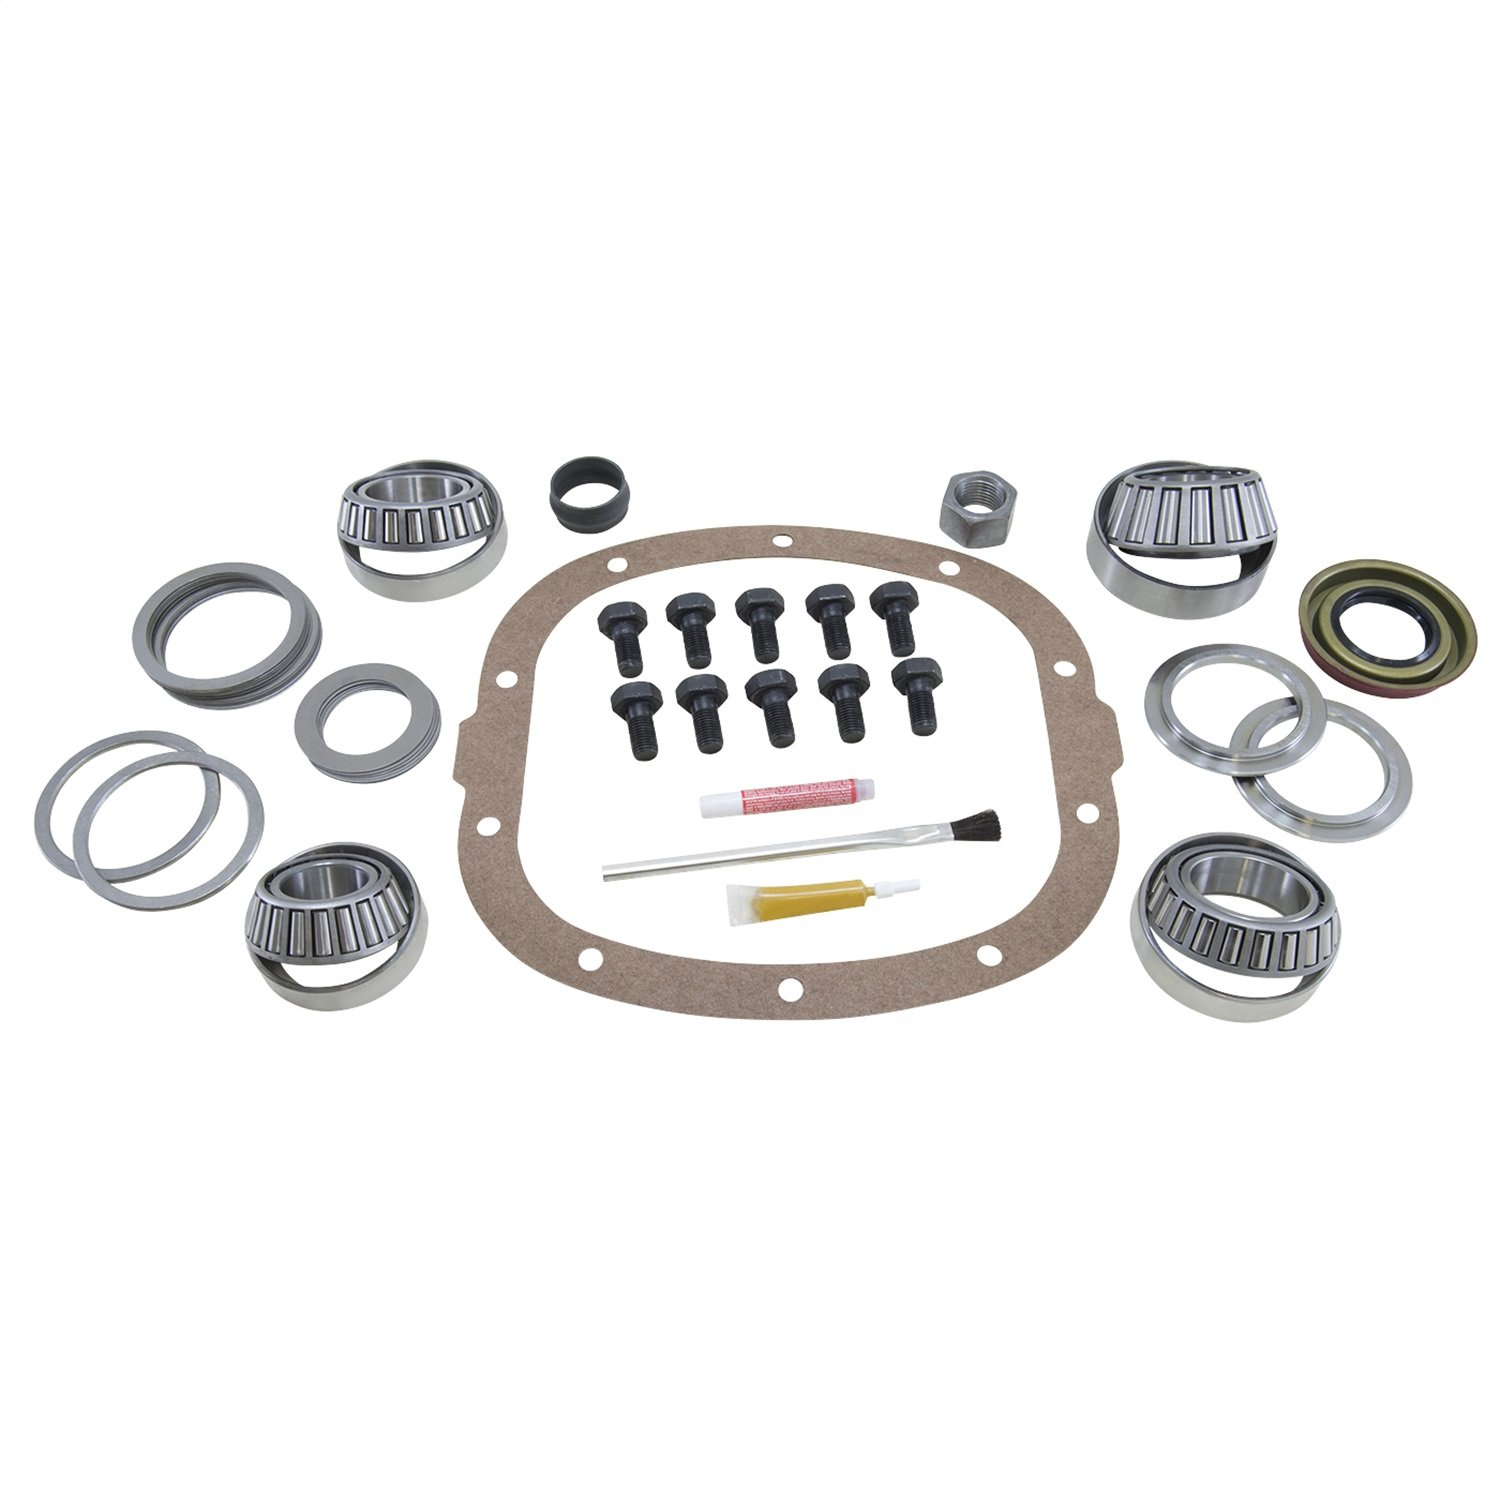 Yukon YKGM7.5-B Master Overhaul Kit for GM 7.5' and 7.625' Differential Yukon Gear YK GM7.5-B